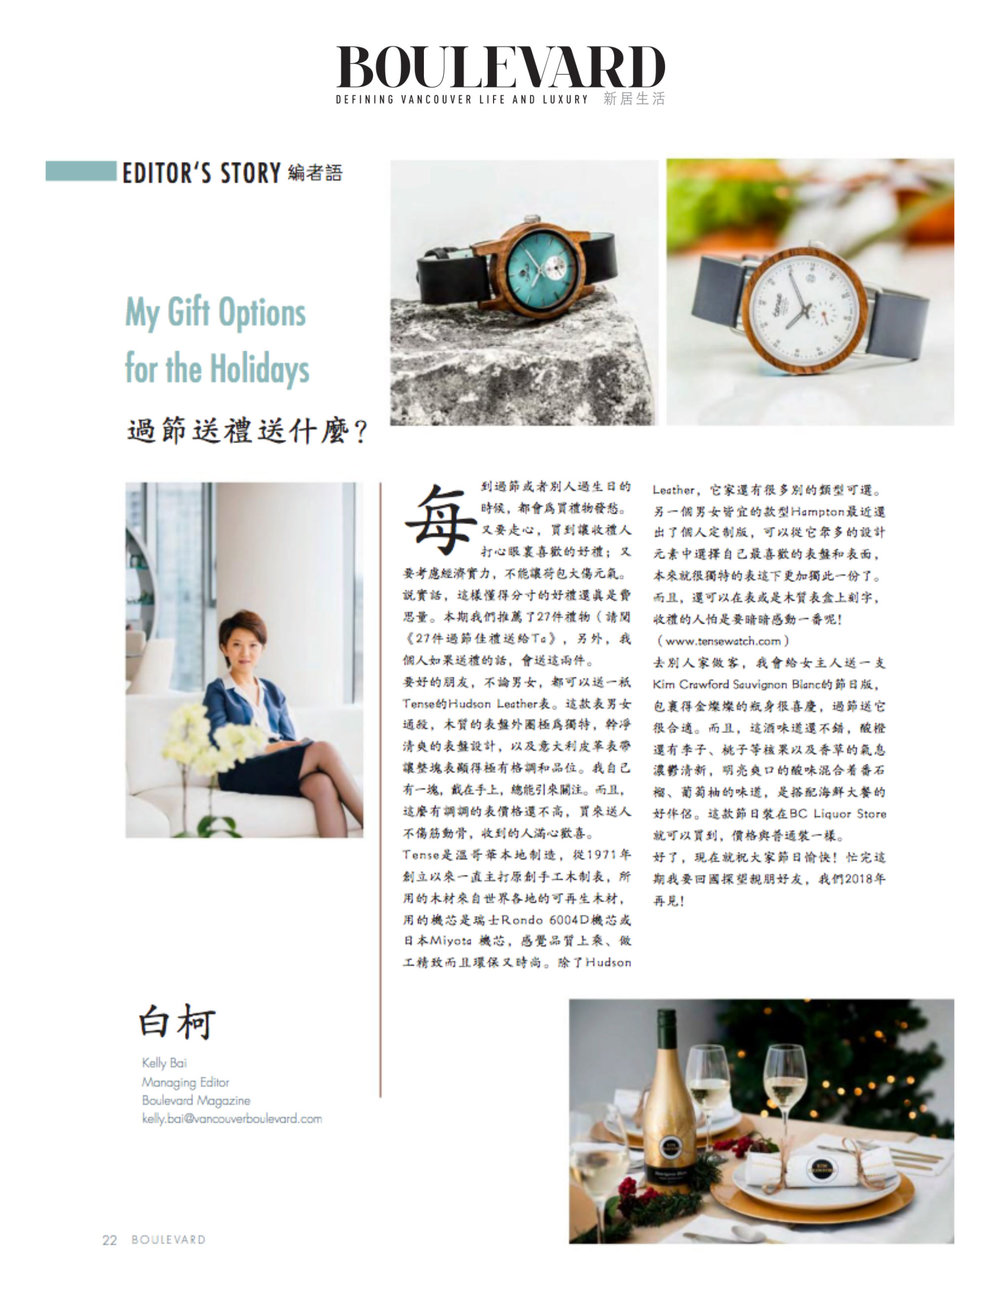 Kim Crawford& Tense Watches - Boulevard Magazine